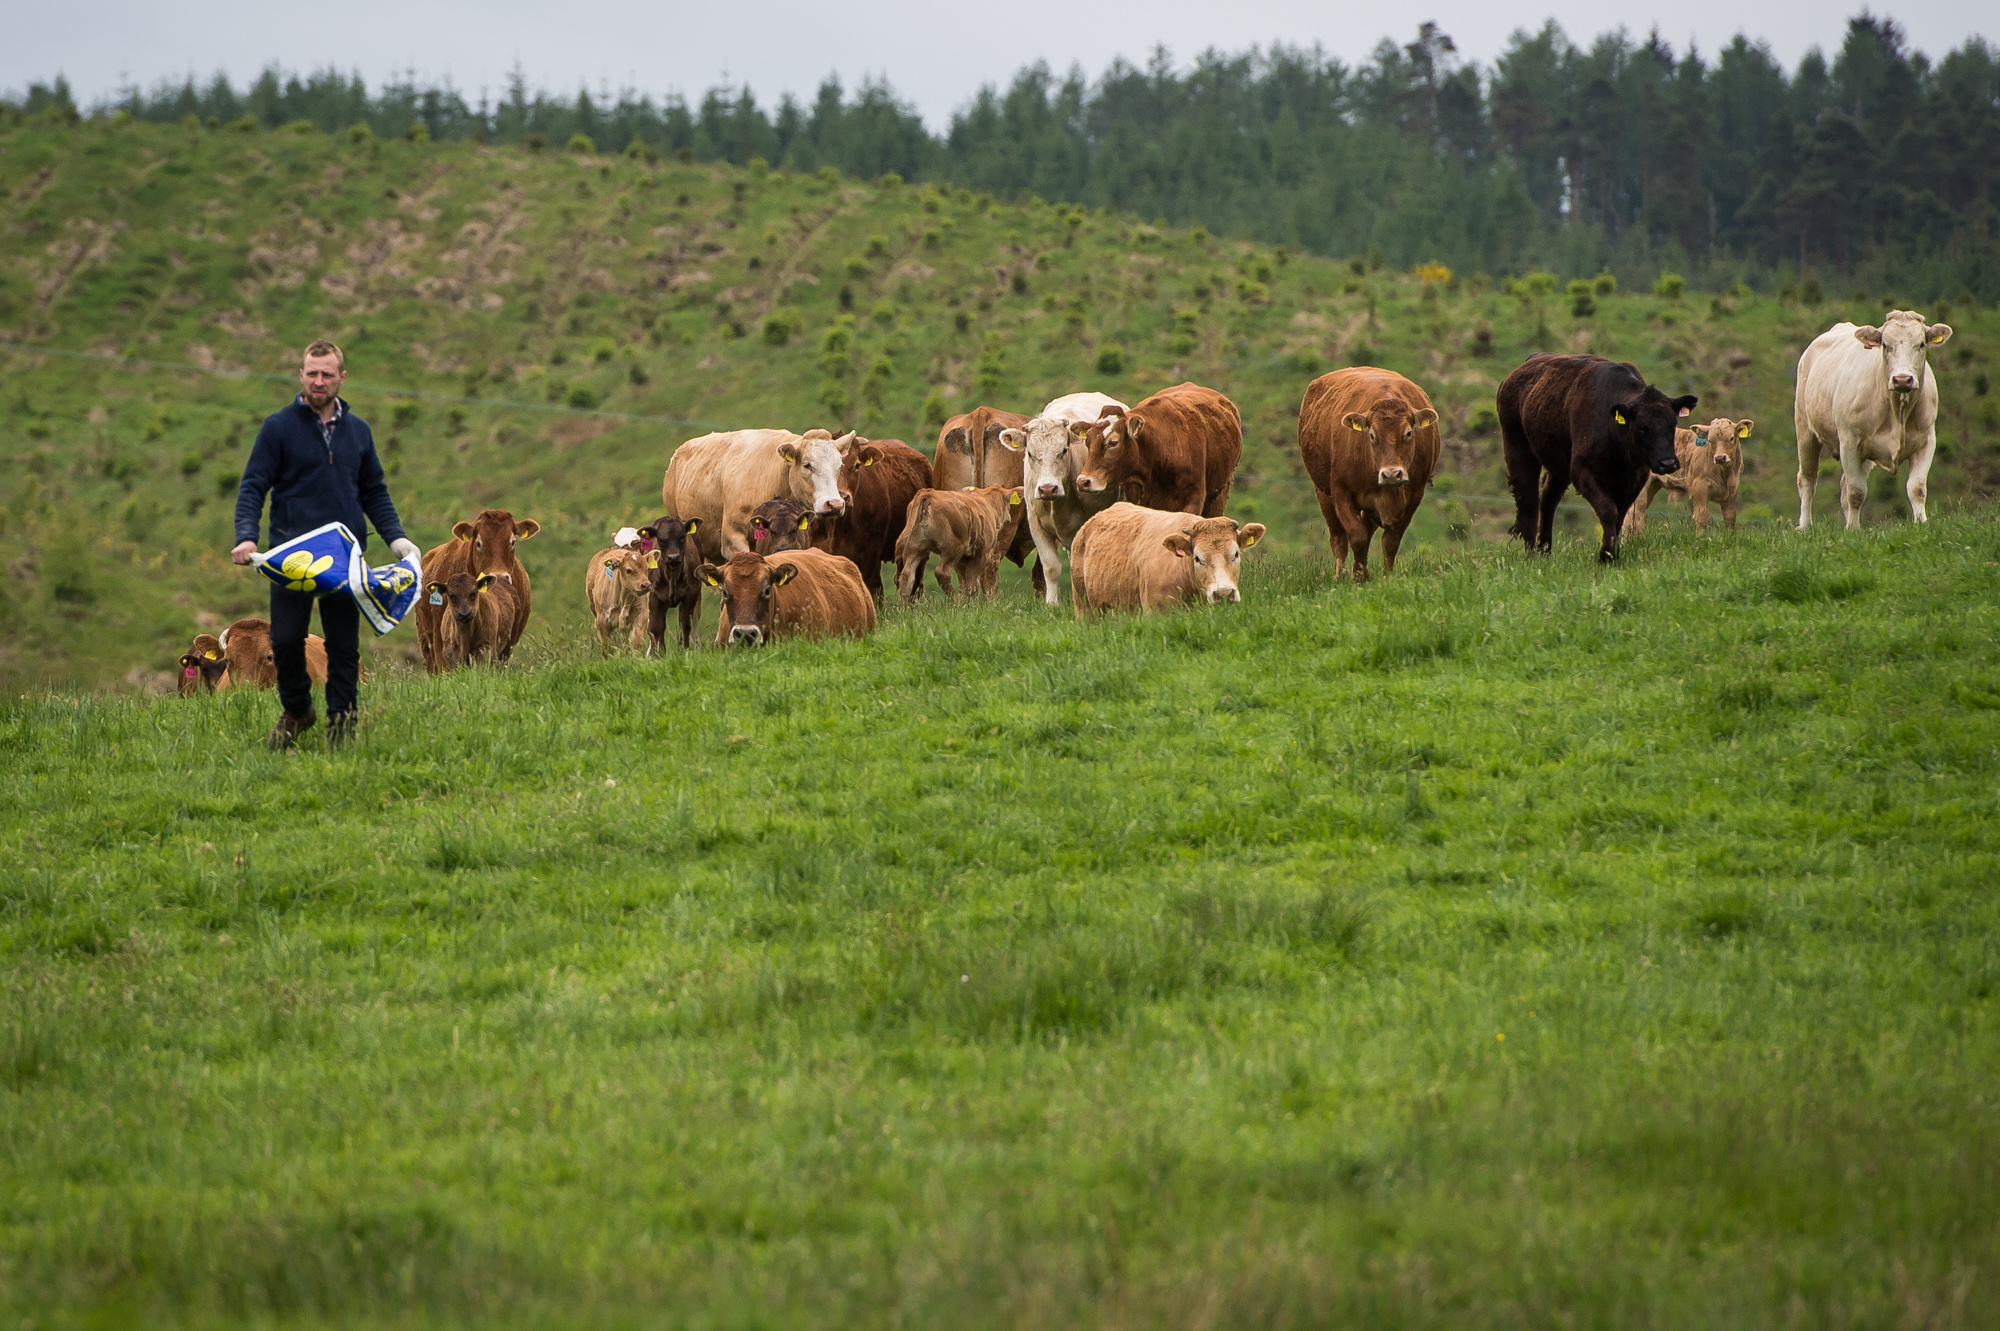 Callum Lindsay is just one of the ambitious farmers given land under a government scheme.